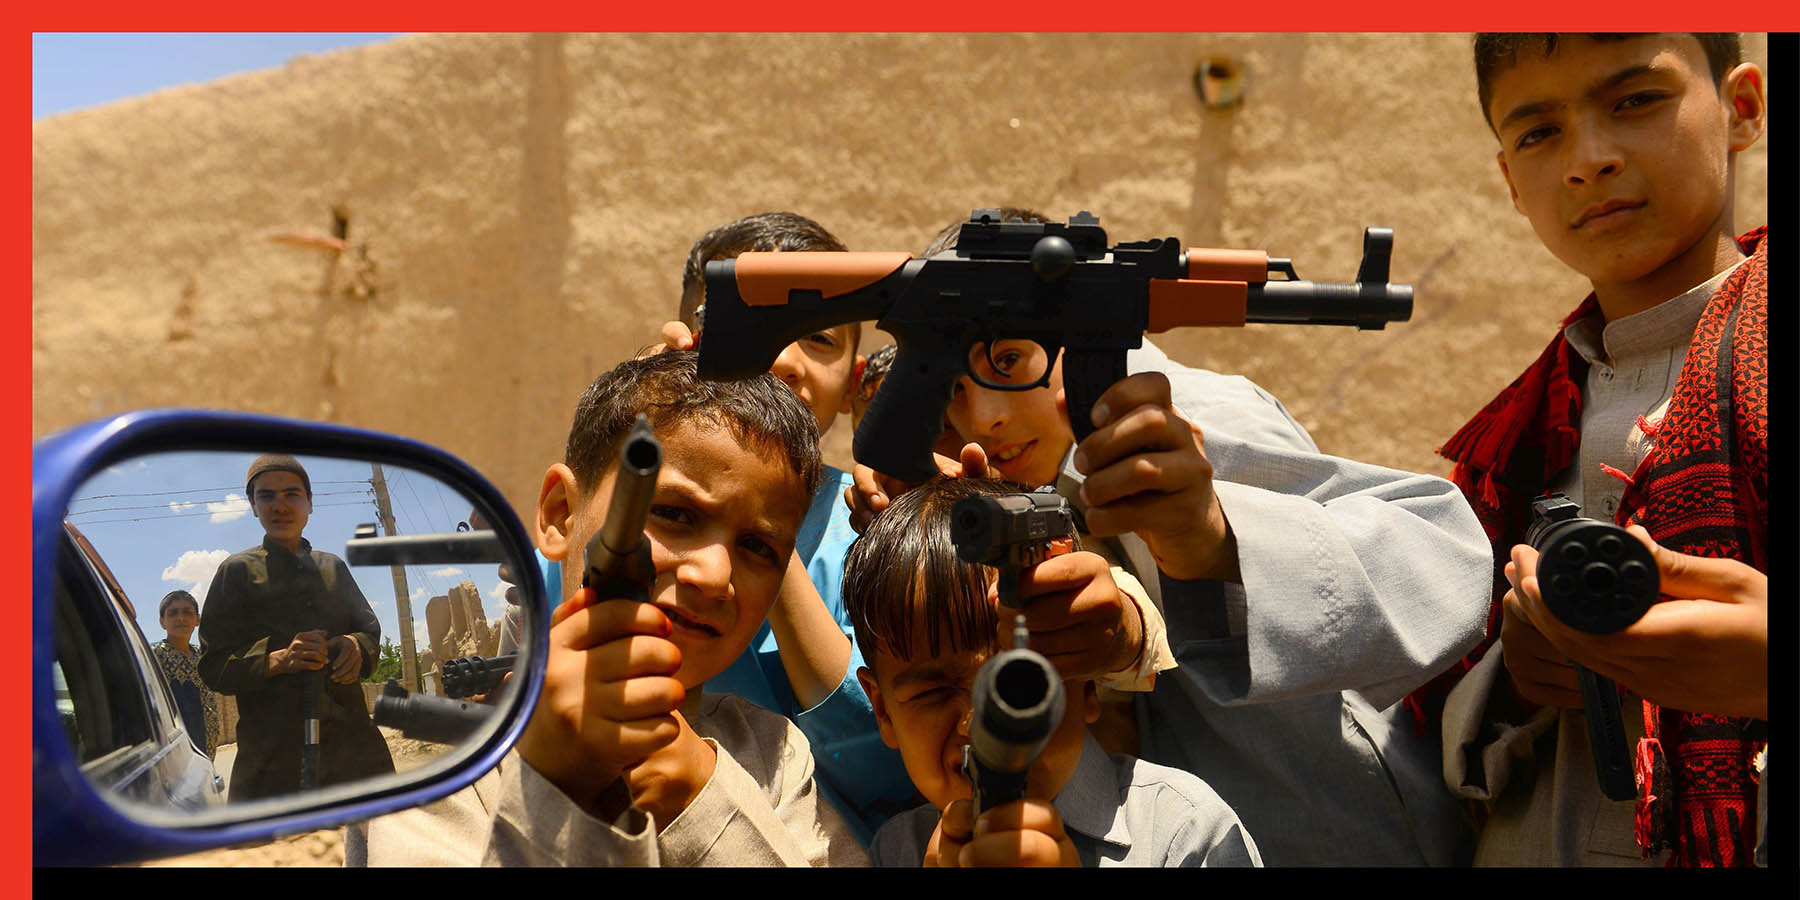 Afghan boys play with plastic guns in Herat, Afghanistan, on June 4.